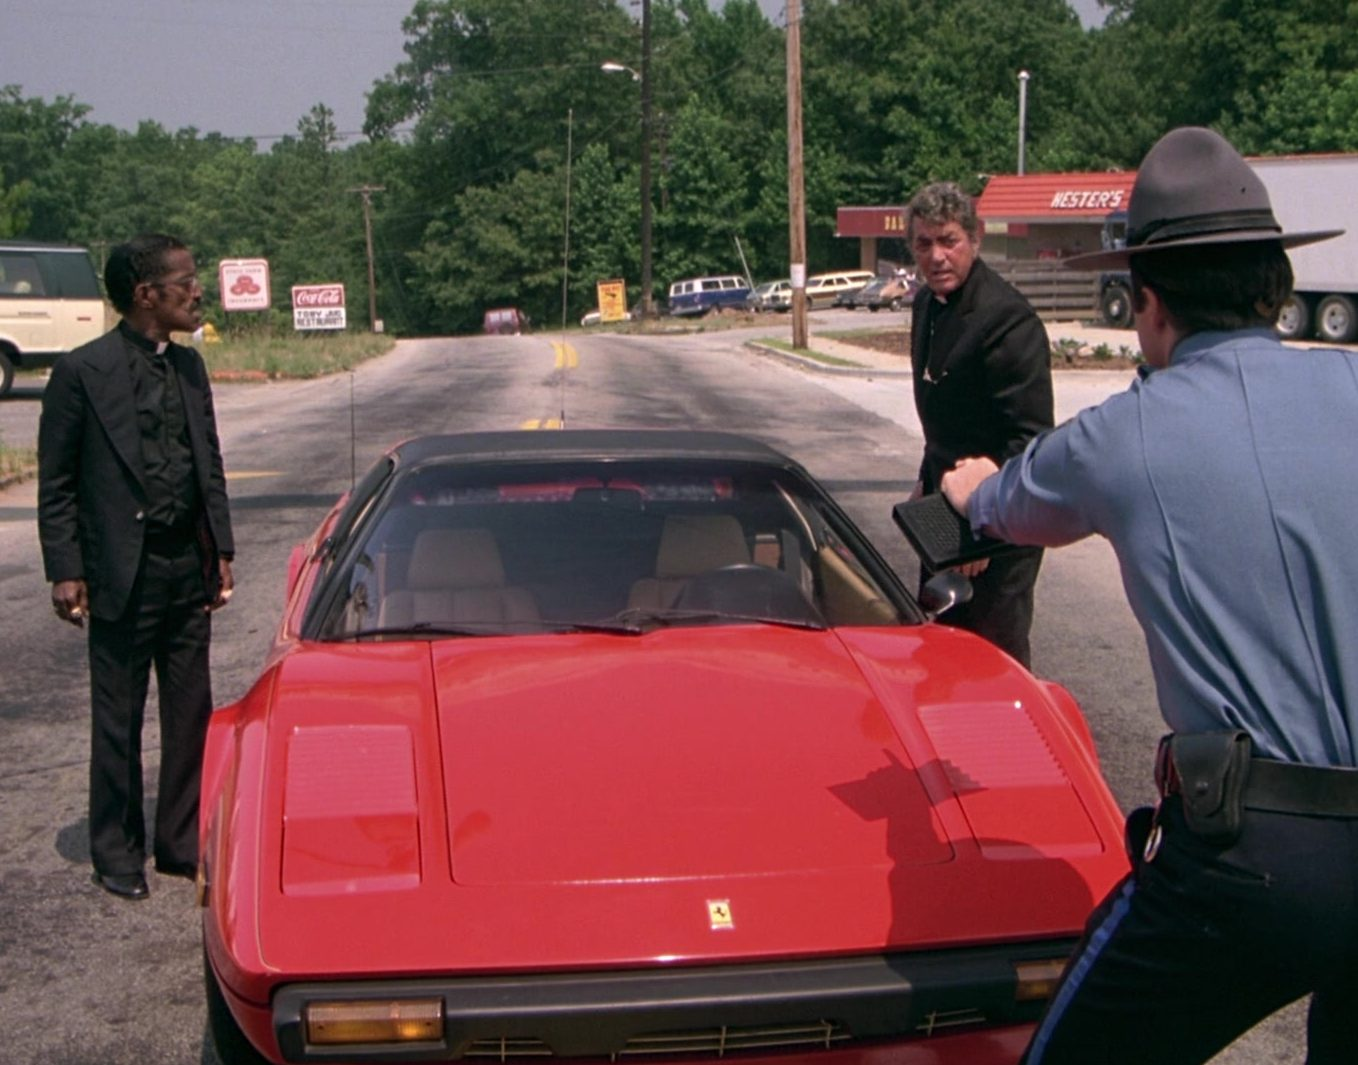 Ferrari 308 GTS Red Sports Car in The Cannonball Run 2 e1626963443525 20 Fun Facts You Didn't Know About The Cannonball Run Films